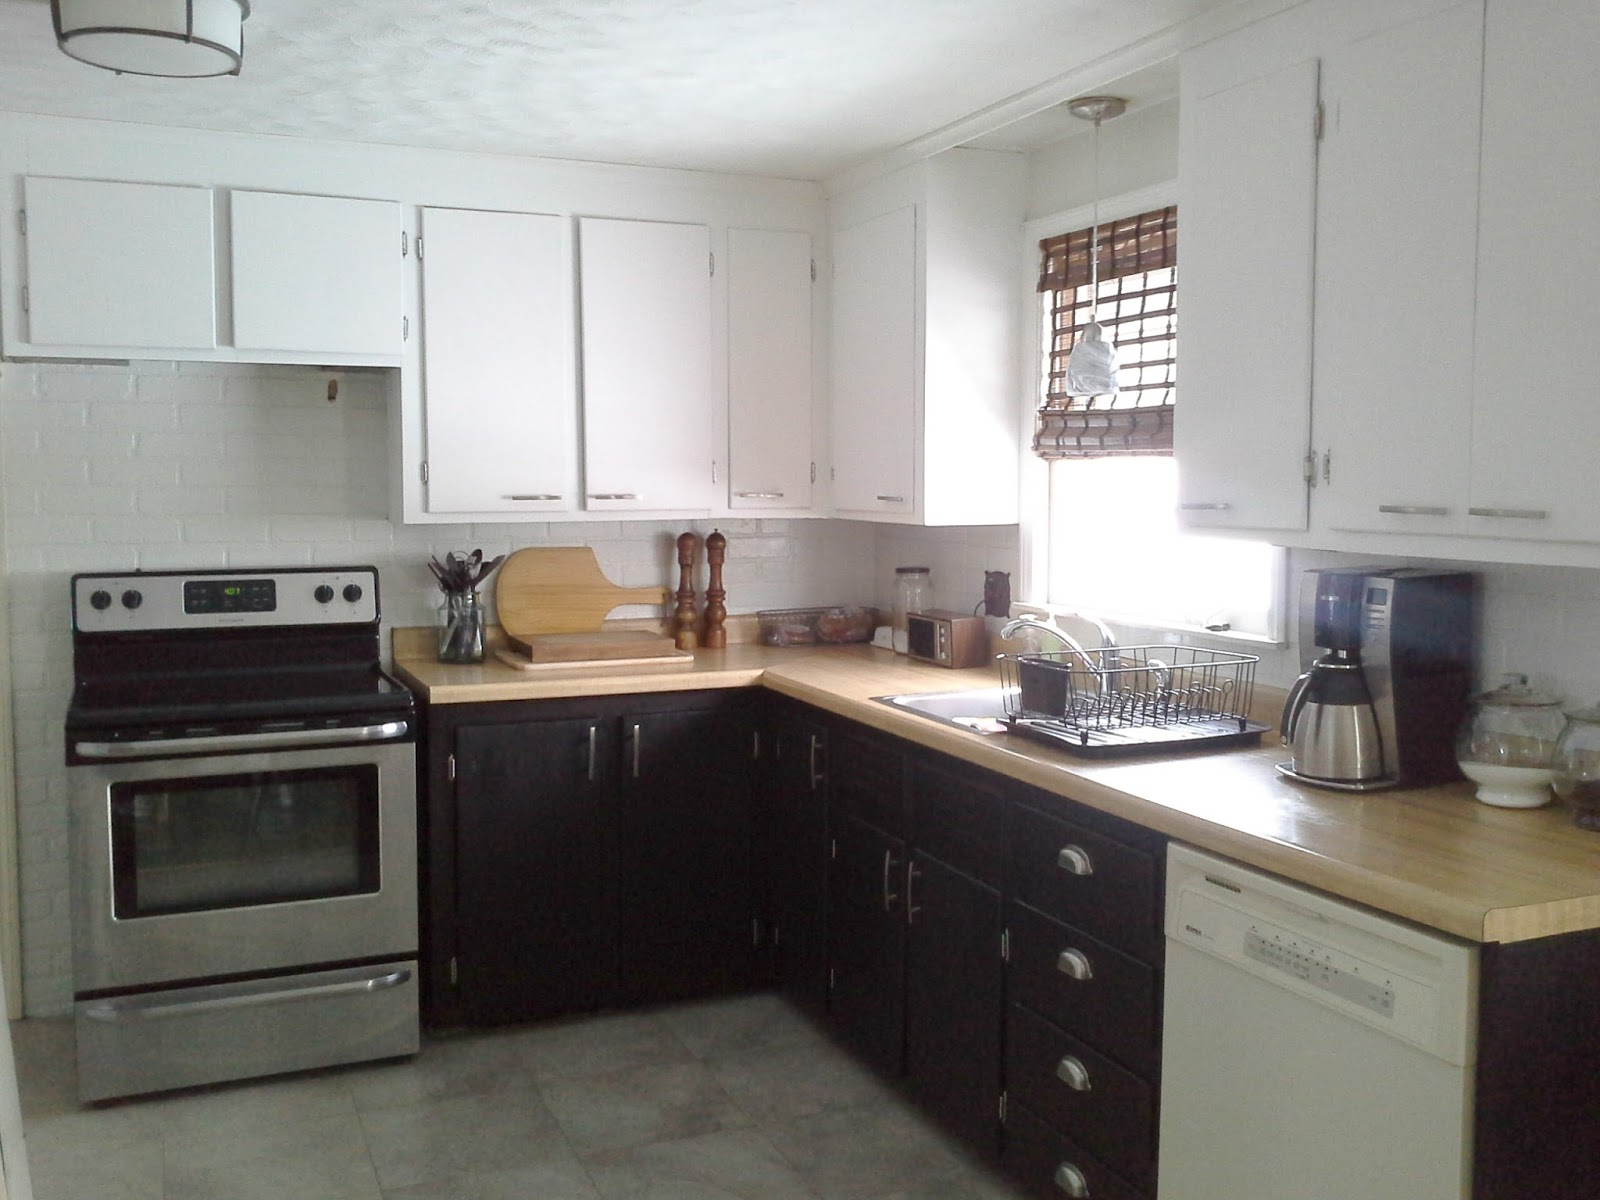 Lilly's Home Designs: Stripping Paint Off Kitchen Cabinets